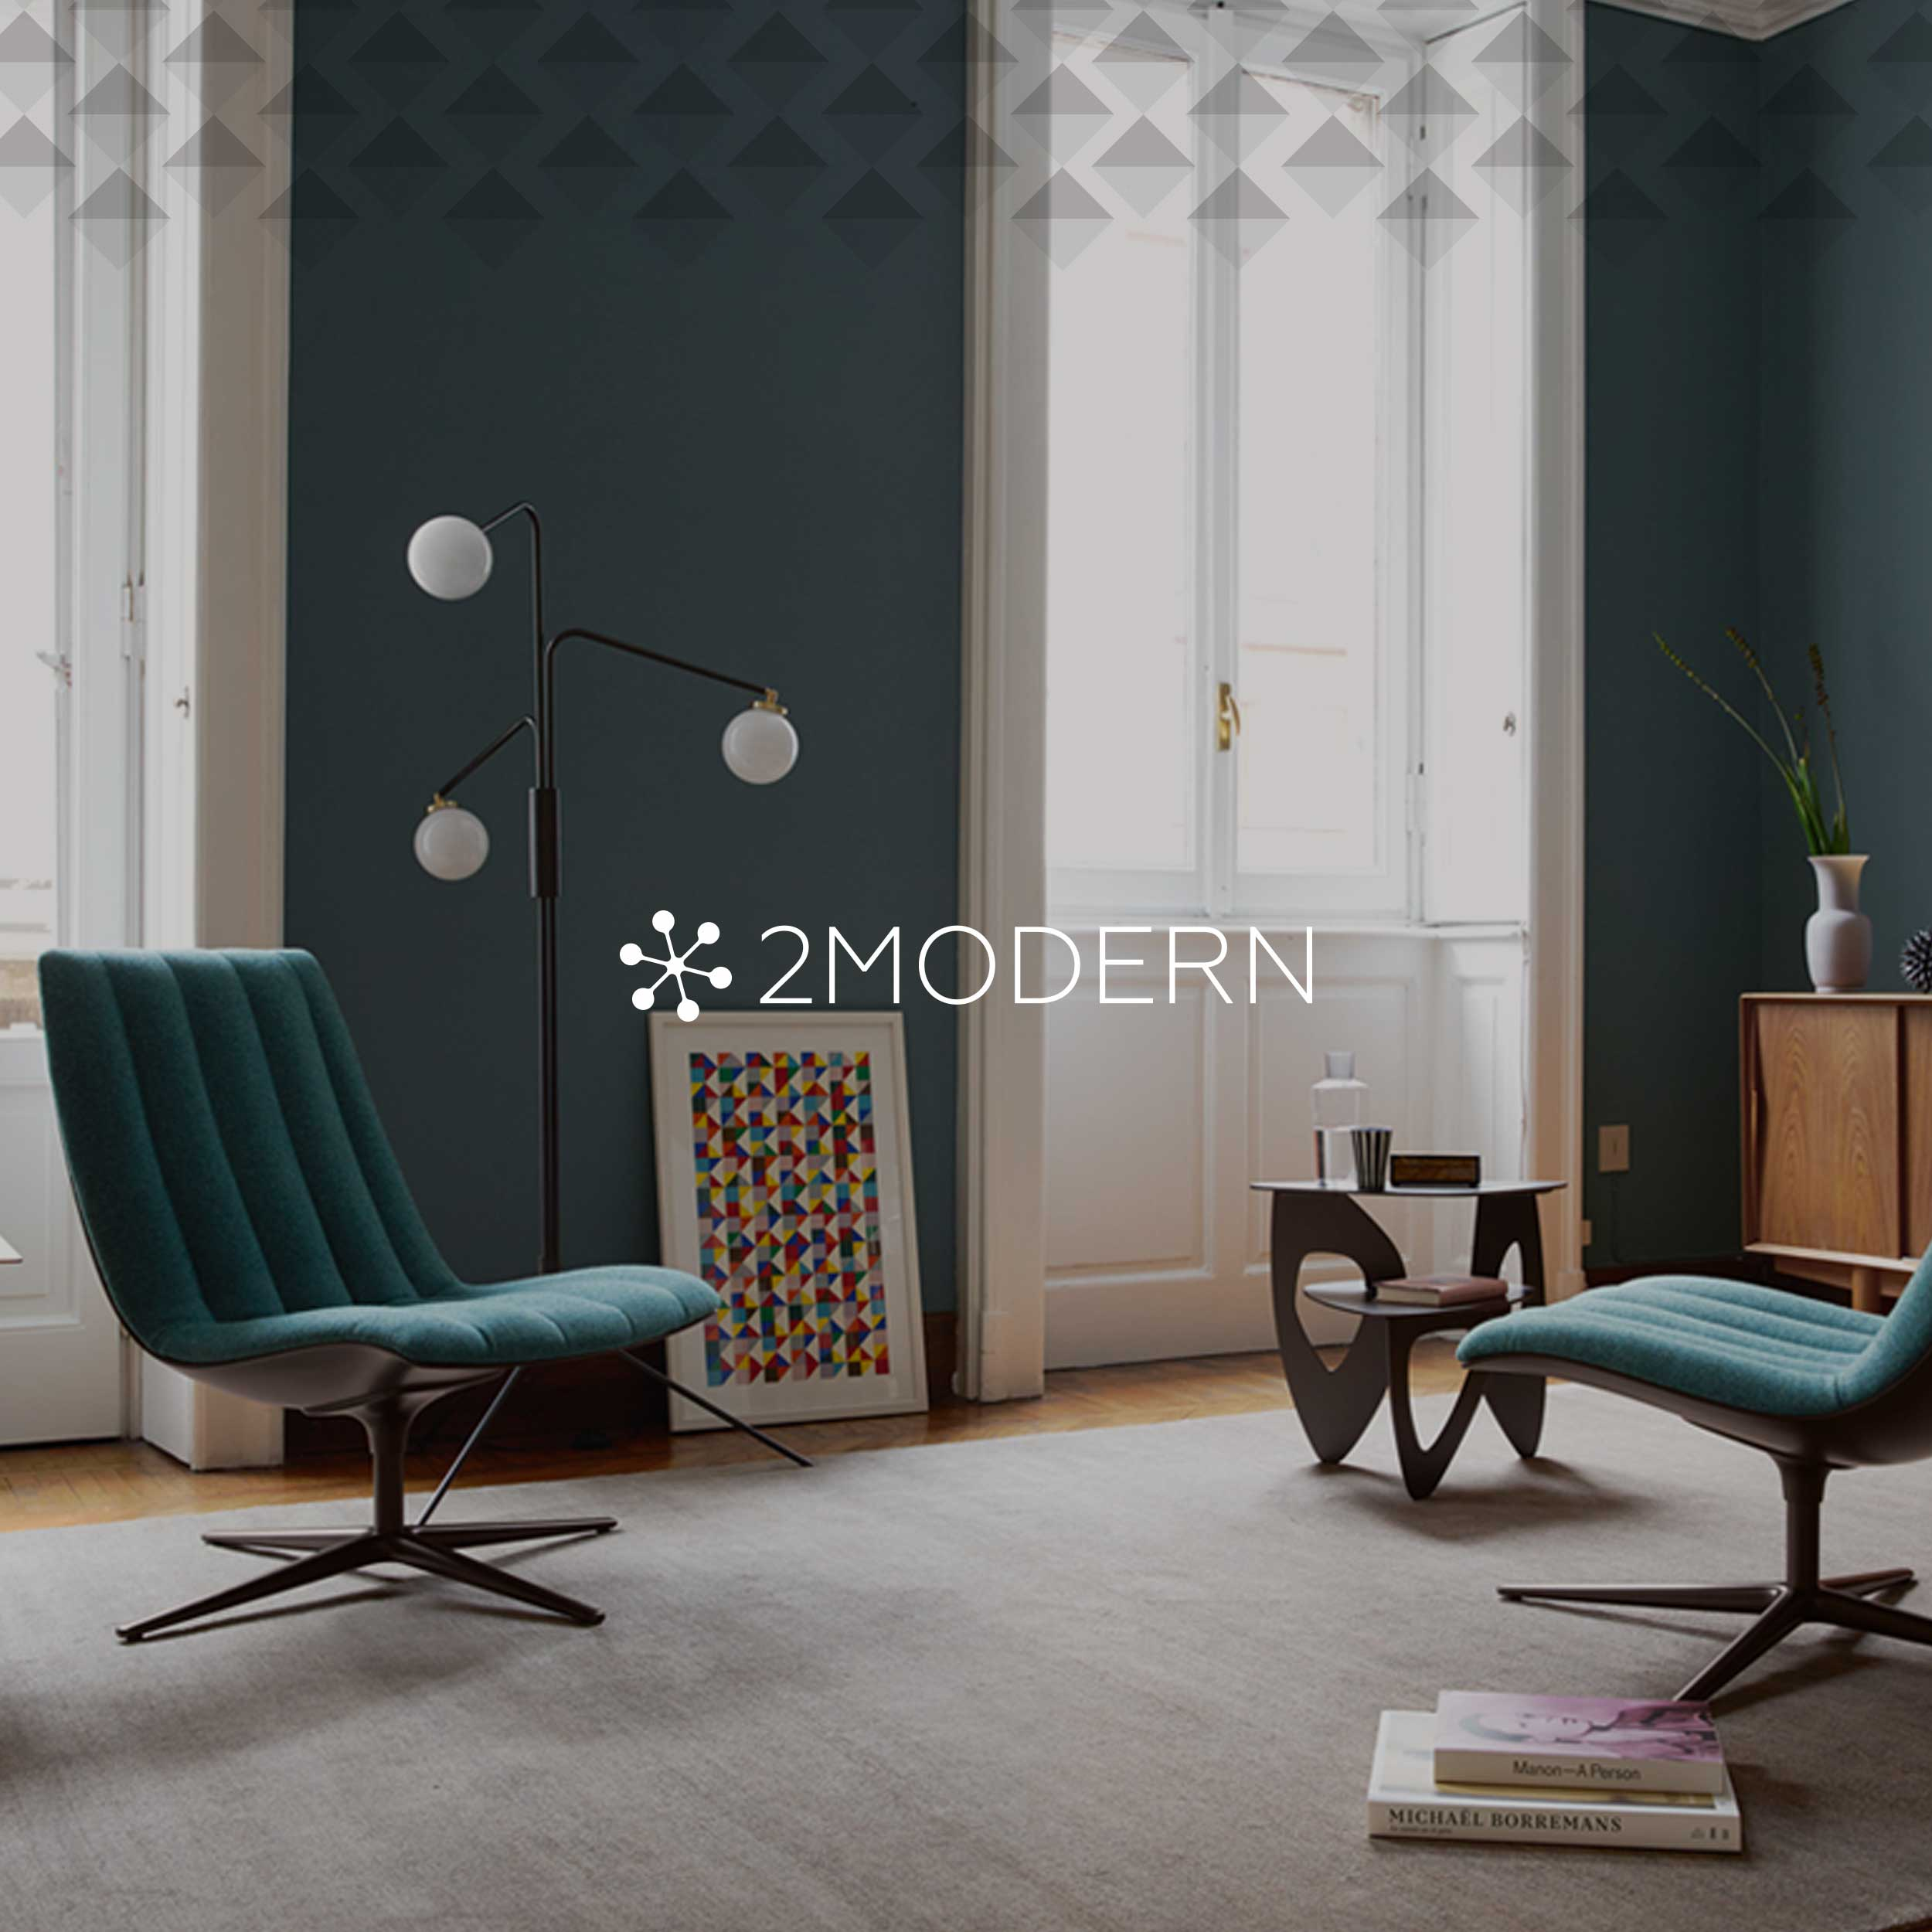 Modern stylish living room for 2Modern branding identity.